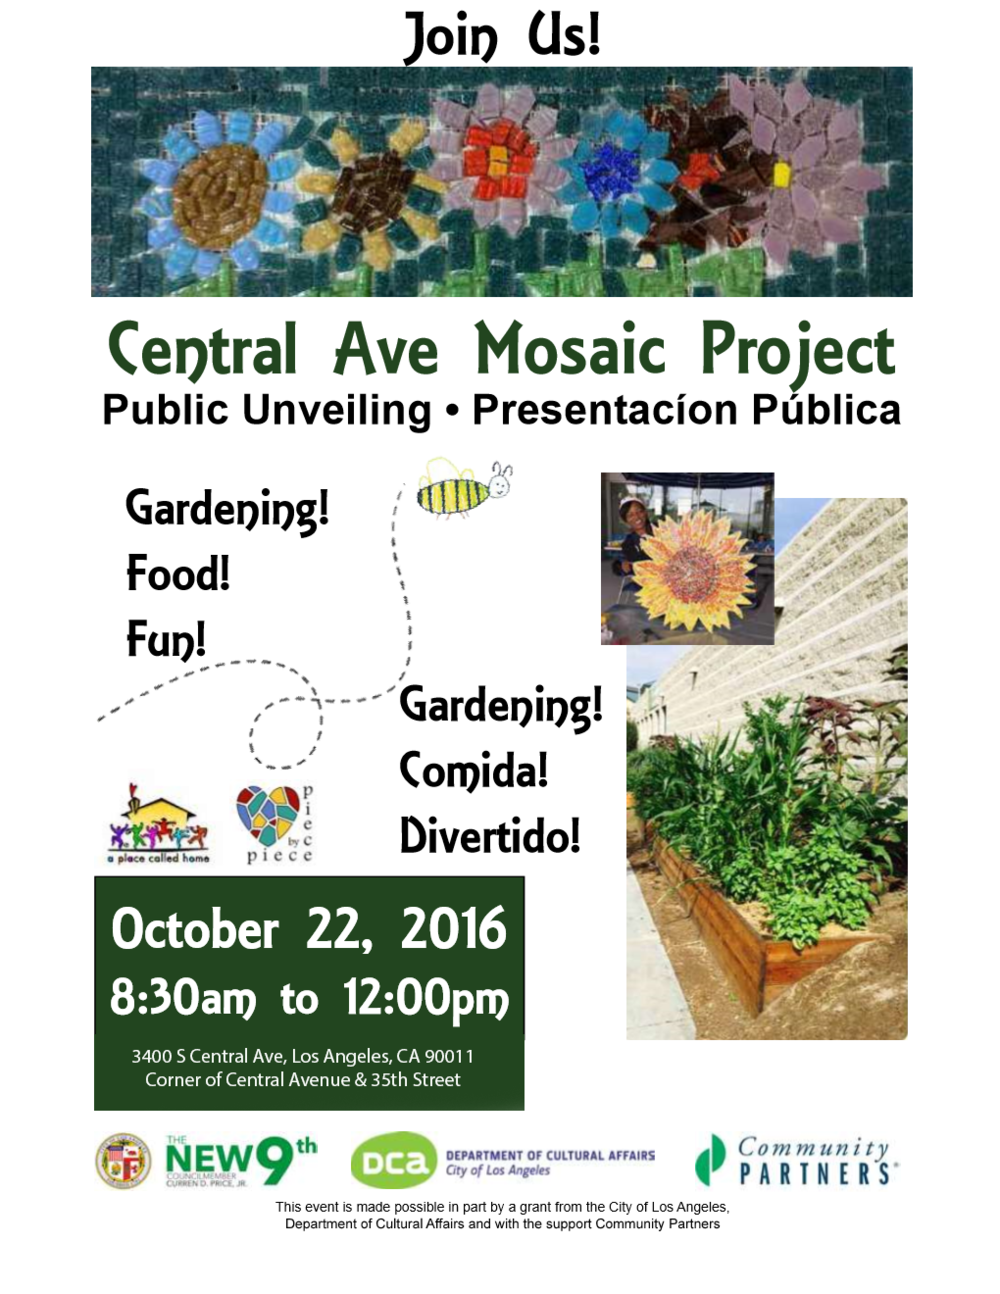 Central Ave Garden Mosaic Project celebration will take place at the Community Garden, located on south side of the Newton Police Station at Central and 35th in South Los Angeles (3400 S Central Ave, Los Angeles, CA 90011)